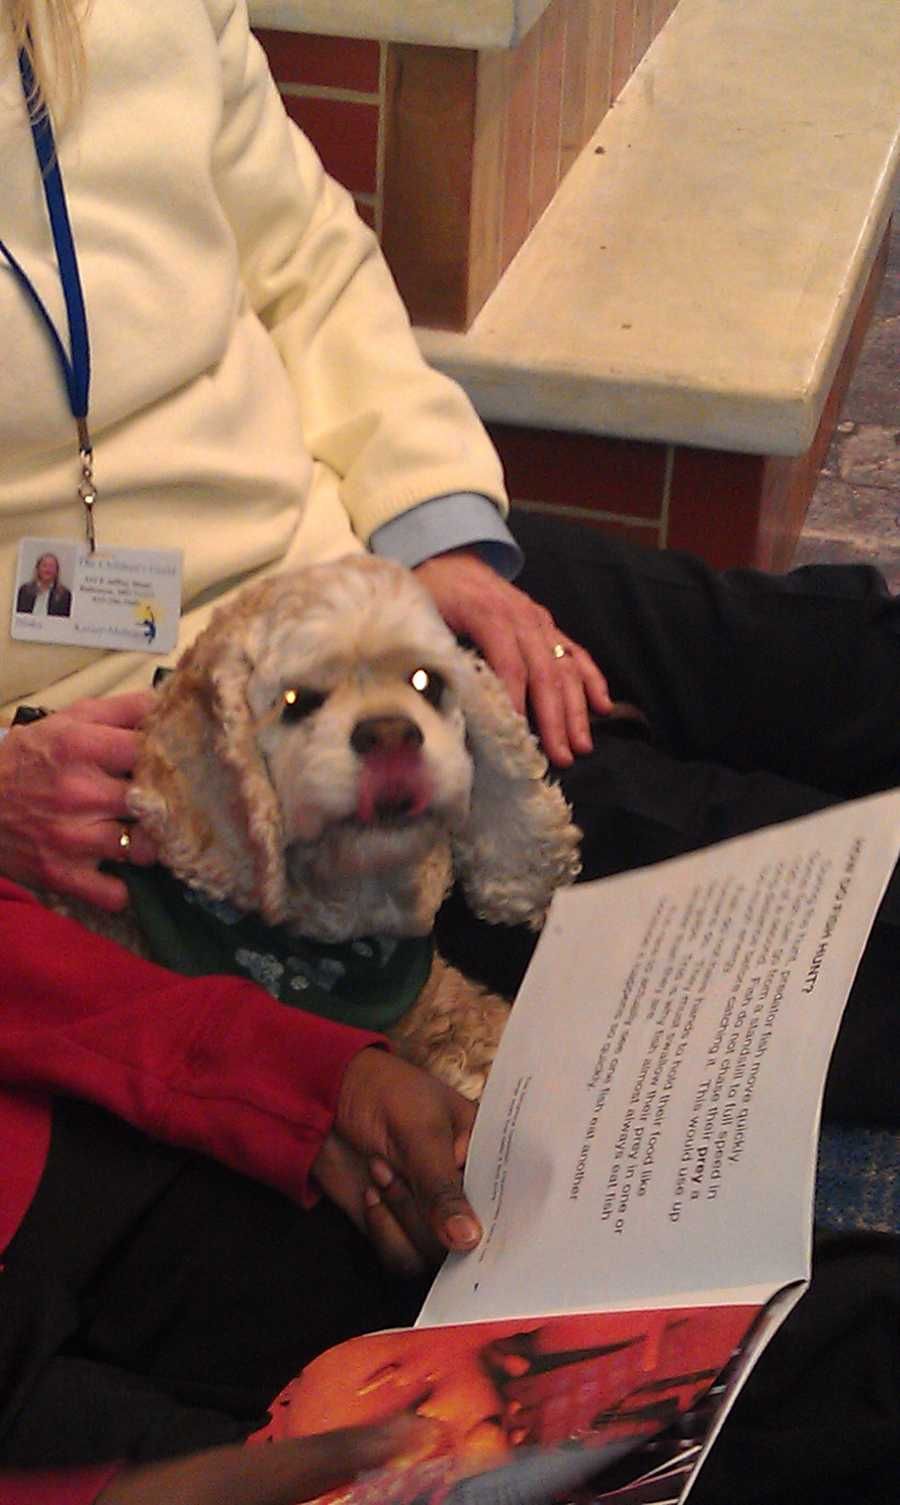 Kaiser-Mohondro said research shows that children who have read to a therapy dog increased their literacy skills by 50 percent in the first month. Read the story.